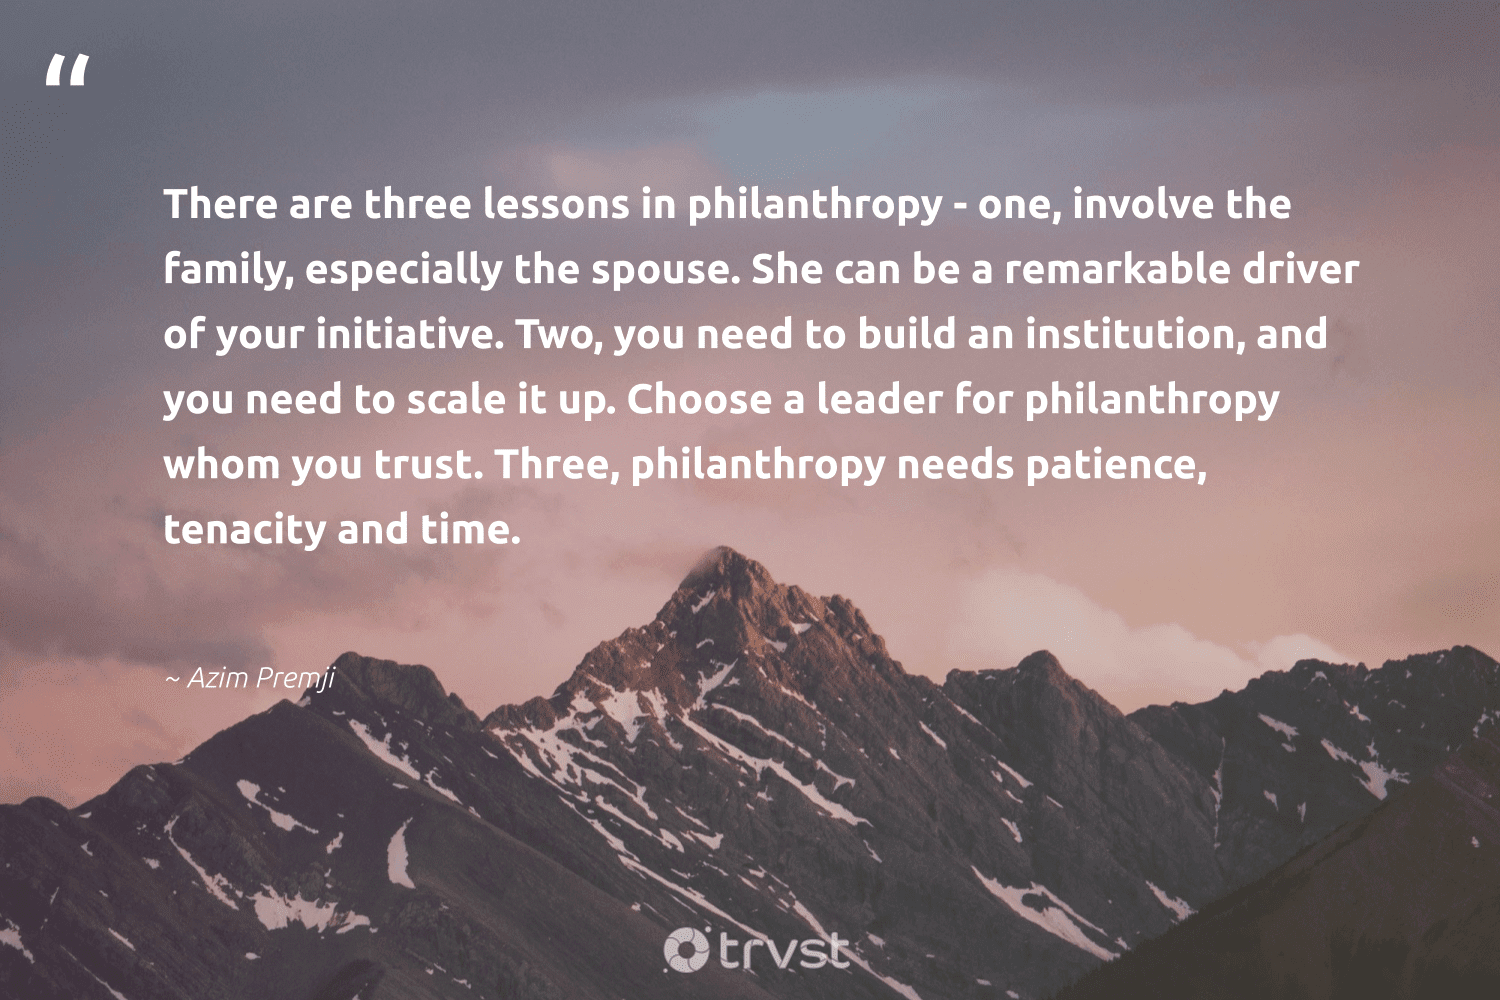 """""""There are three lessons in philanthropy - one, involve the family, especially the spouse. She can be a remarkable driver of your initiative. Two, you need to build an institution, and you need to scale it up. Choose a leader for philanthropy whom you trust. Three, philanthropy needs patience, tenacity and time.""""  - Azim Premji #trvst #quotes #family #leader #philanthropy #leadershipdevelopment #togetherwecan #begreat #gogreen #leadership #itscooltobekind #softskills"""